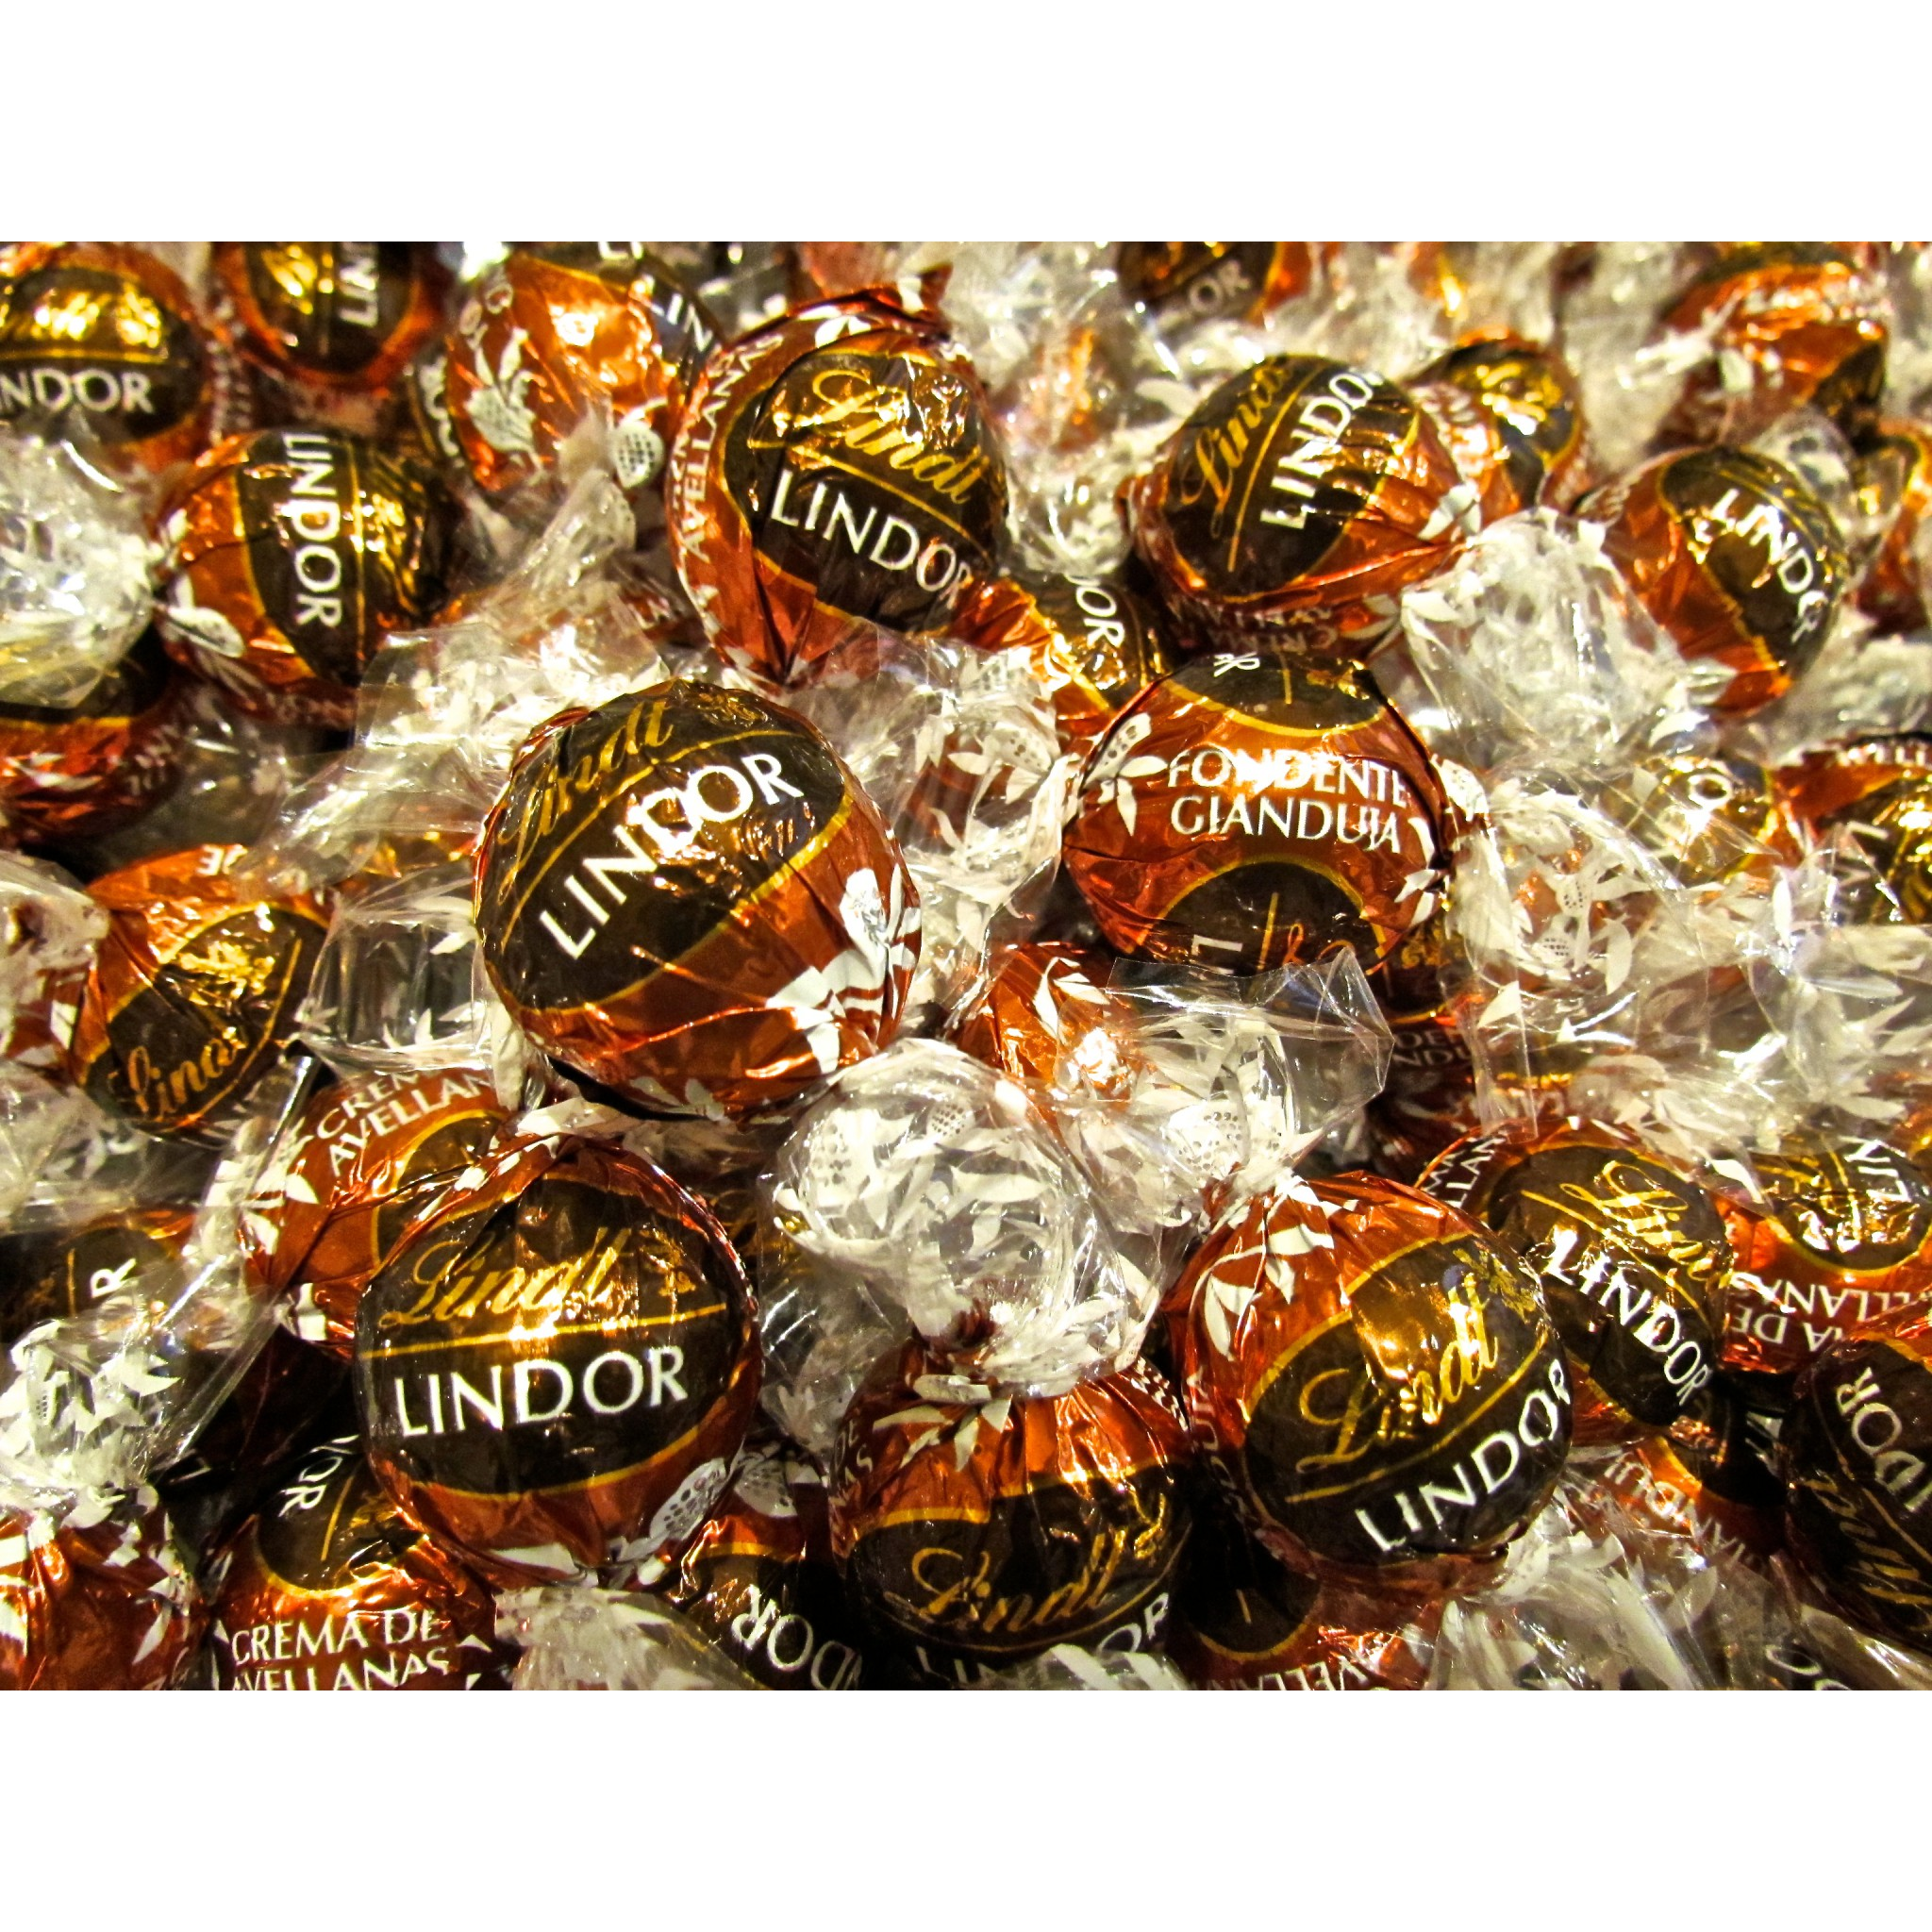 Lindt Chocolate Lindor Dark And Hazelnut Cream Shop Gift Hazelnuts 500g